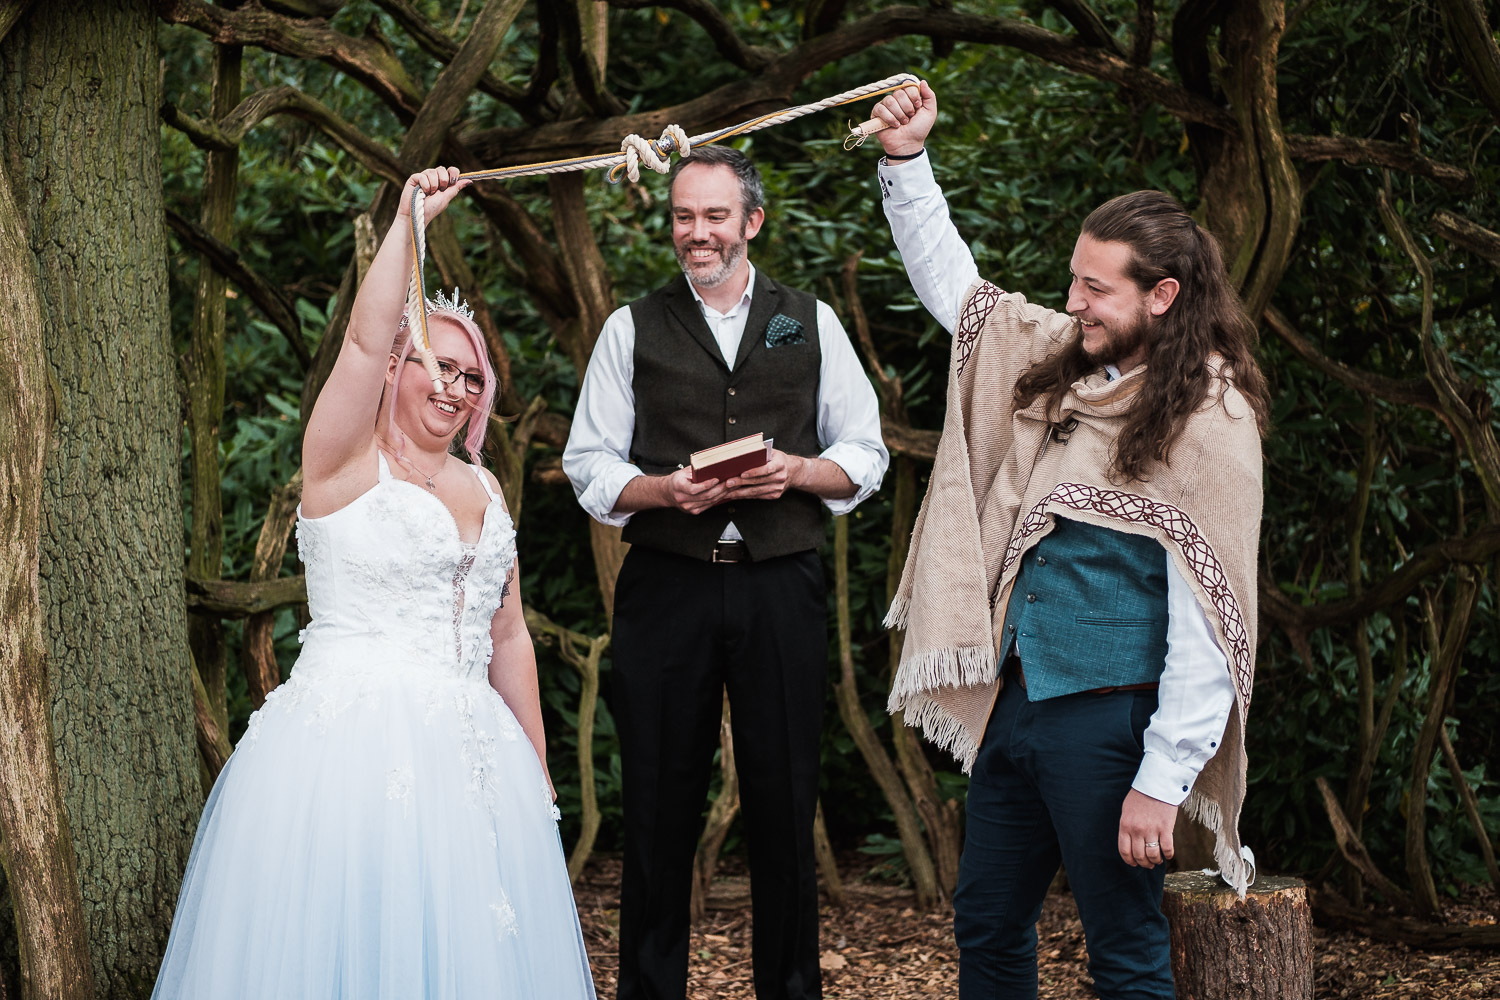 Amber and Jake tie the knot outdoors in a woodland ceremony at their Escrick Park Estate wedding